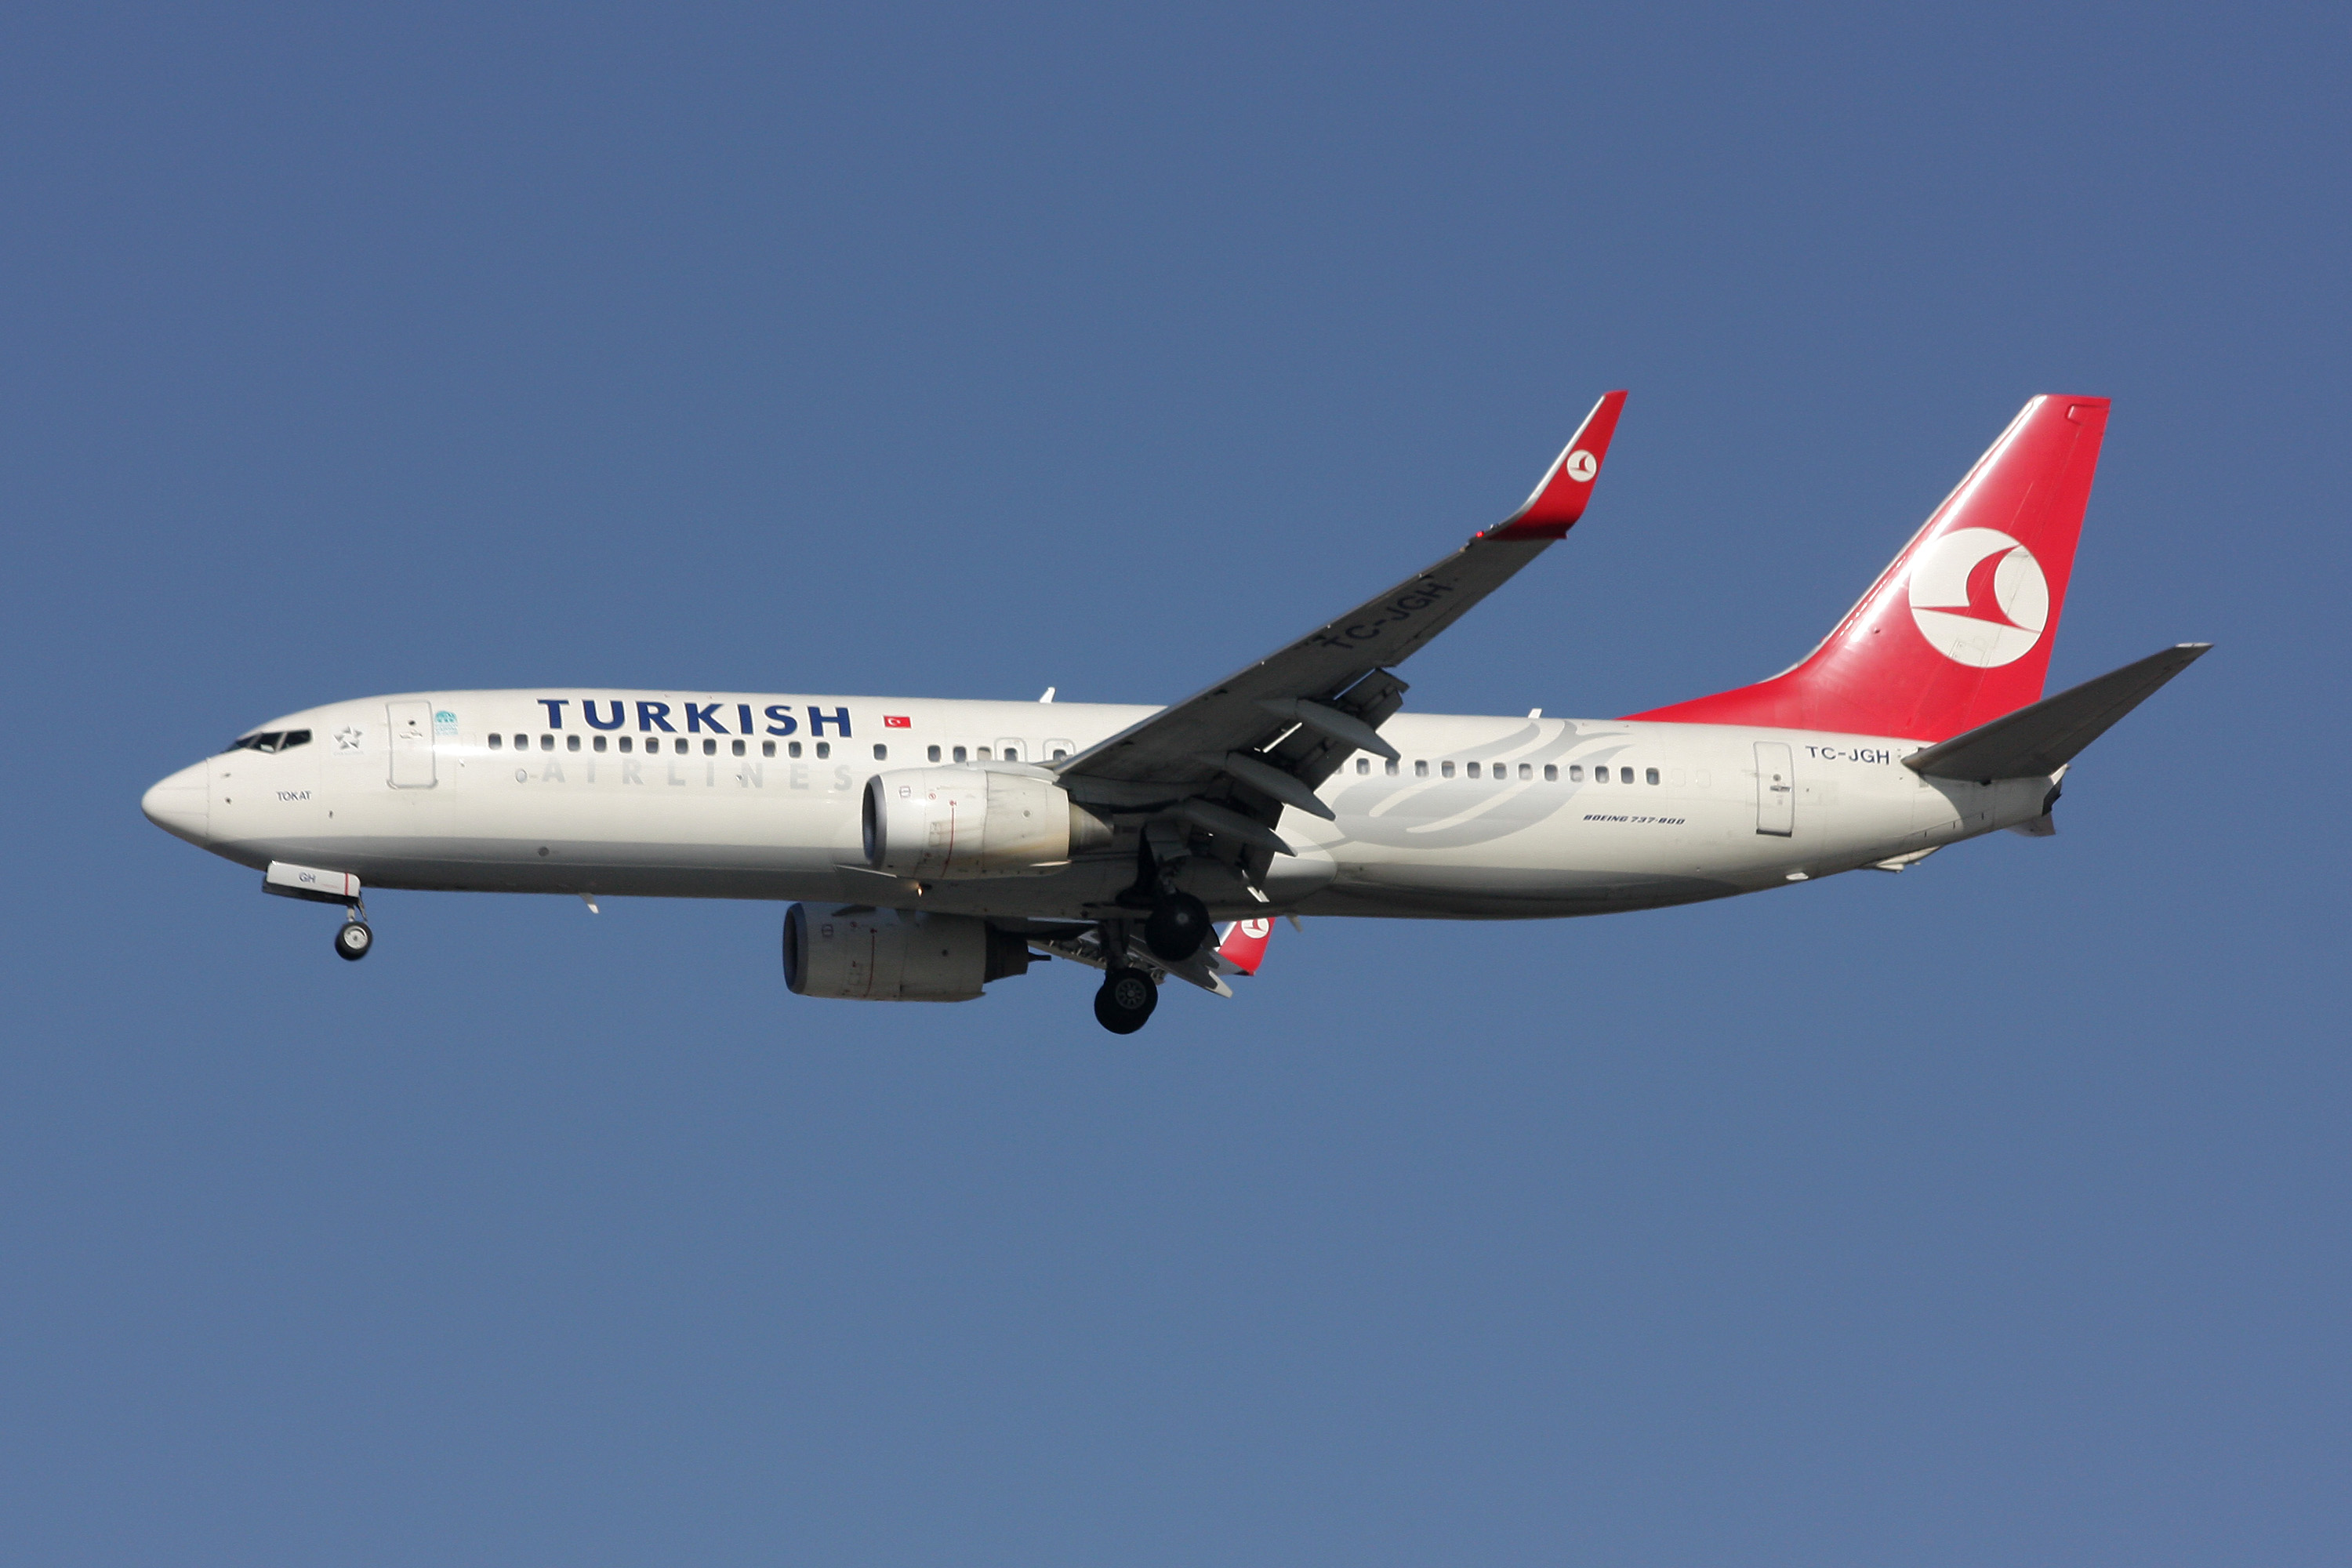 File:Boeing 737-800 Turkish Airlines.jpg - Wikimedia Commons